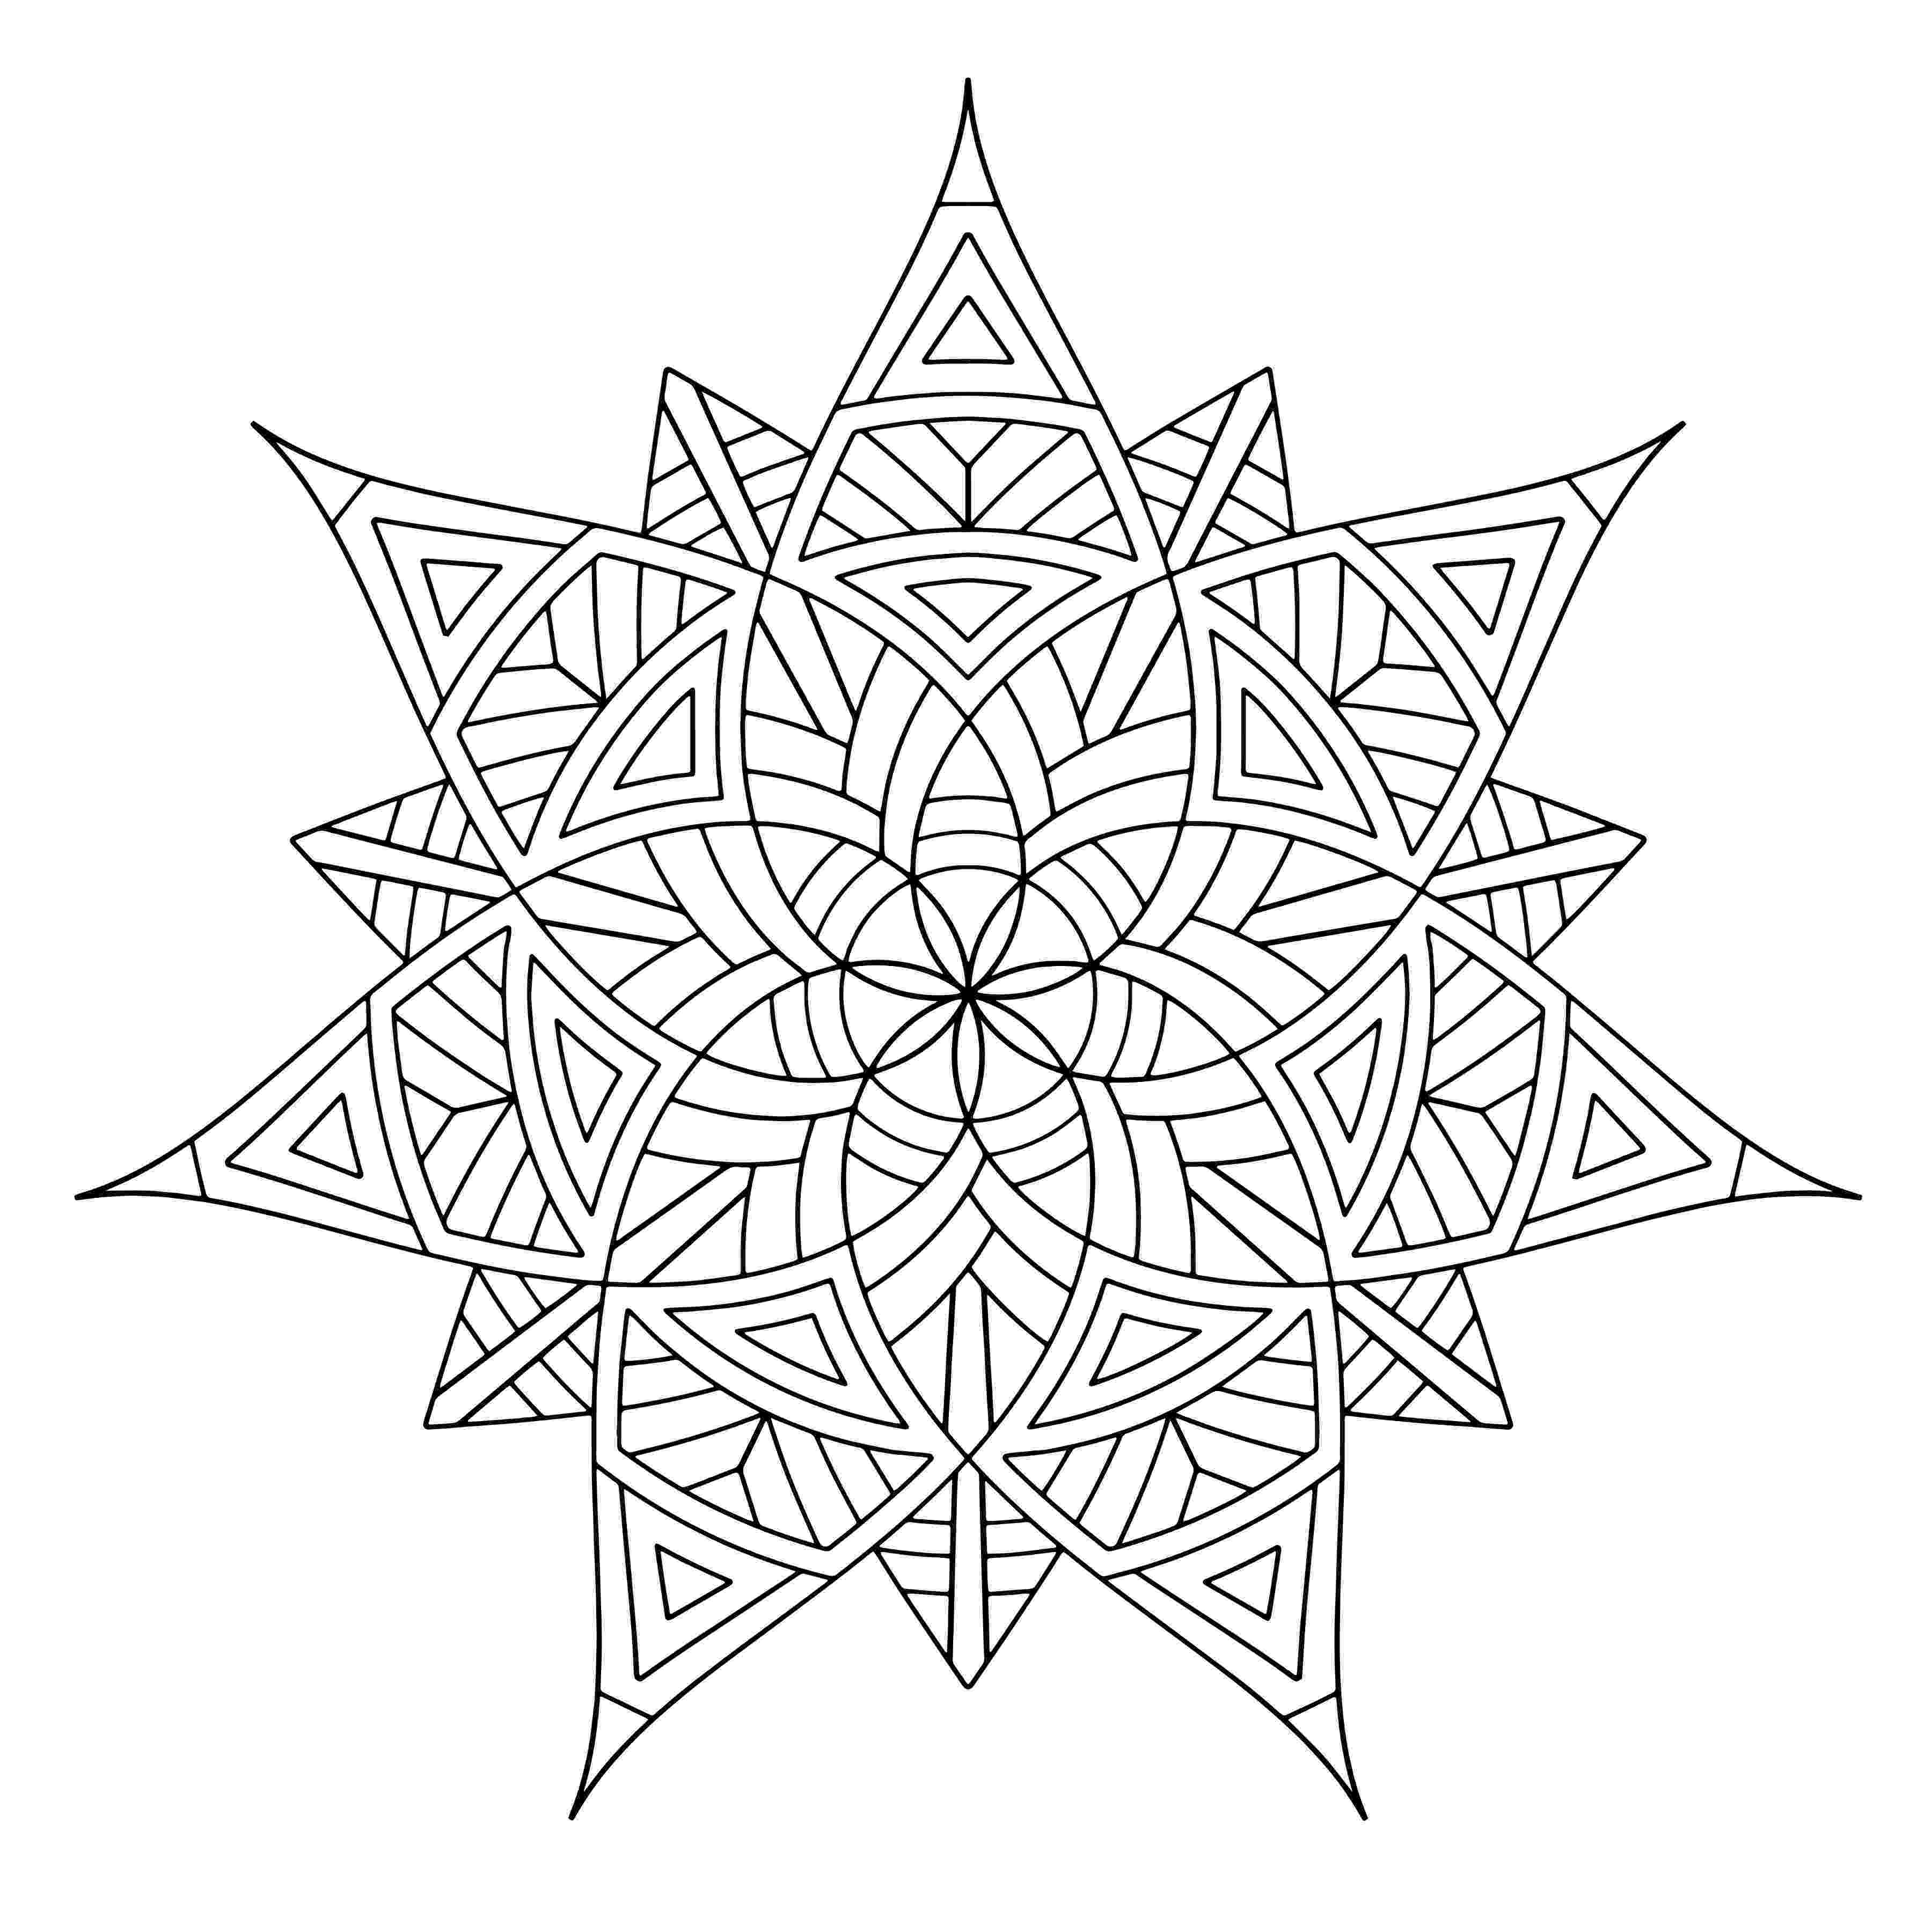 printable mandala coloring pages for adults free printable geometric coloring pages for adults printable pages for coloring mandala adults